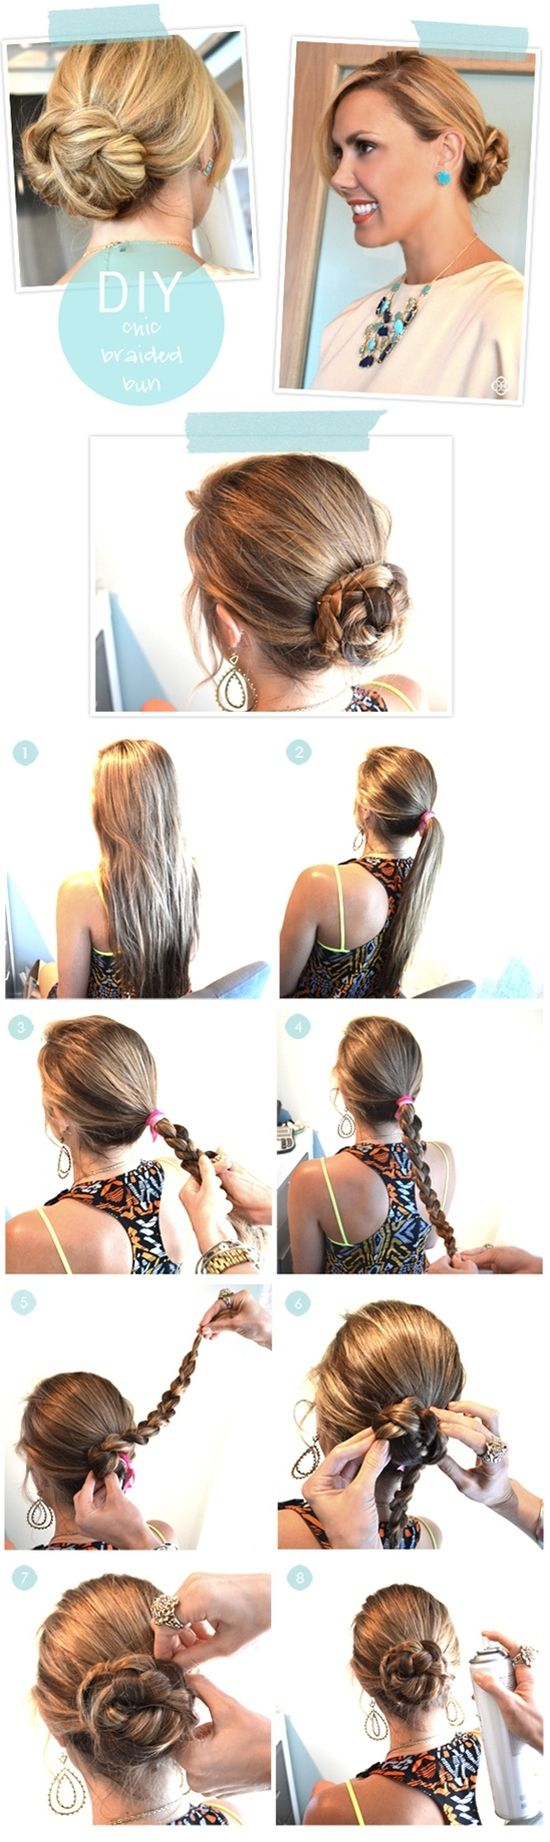 DIY: Chic Braided Bun #hair #tutorial #KendraScot | Pinterest Most Wanted